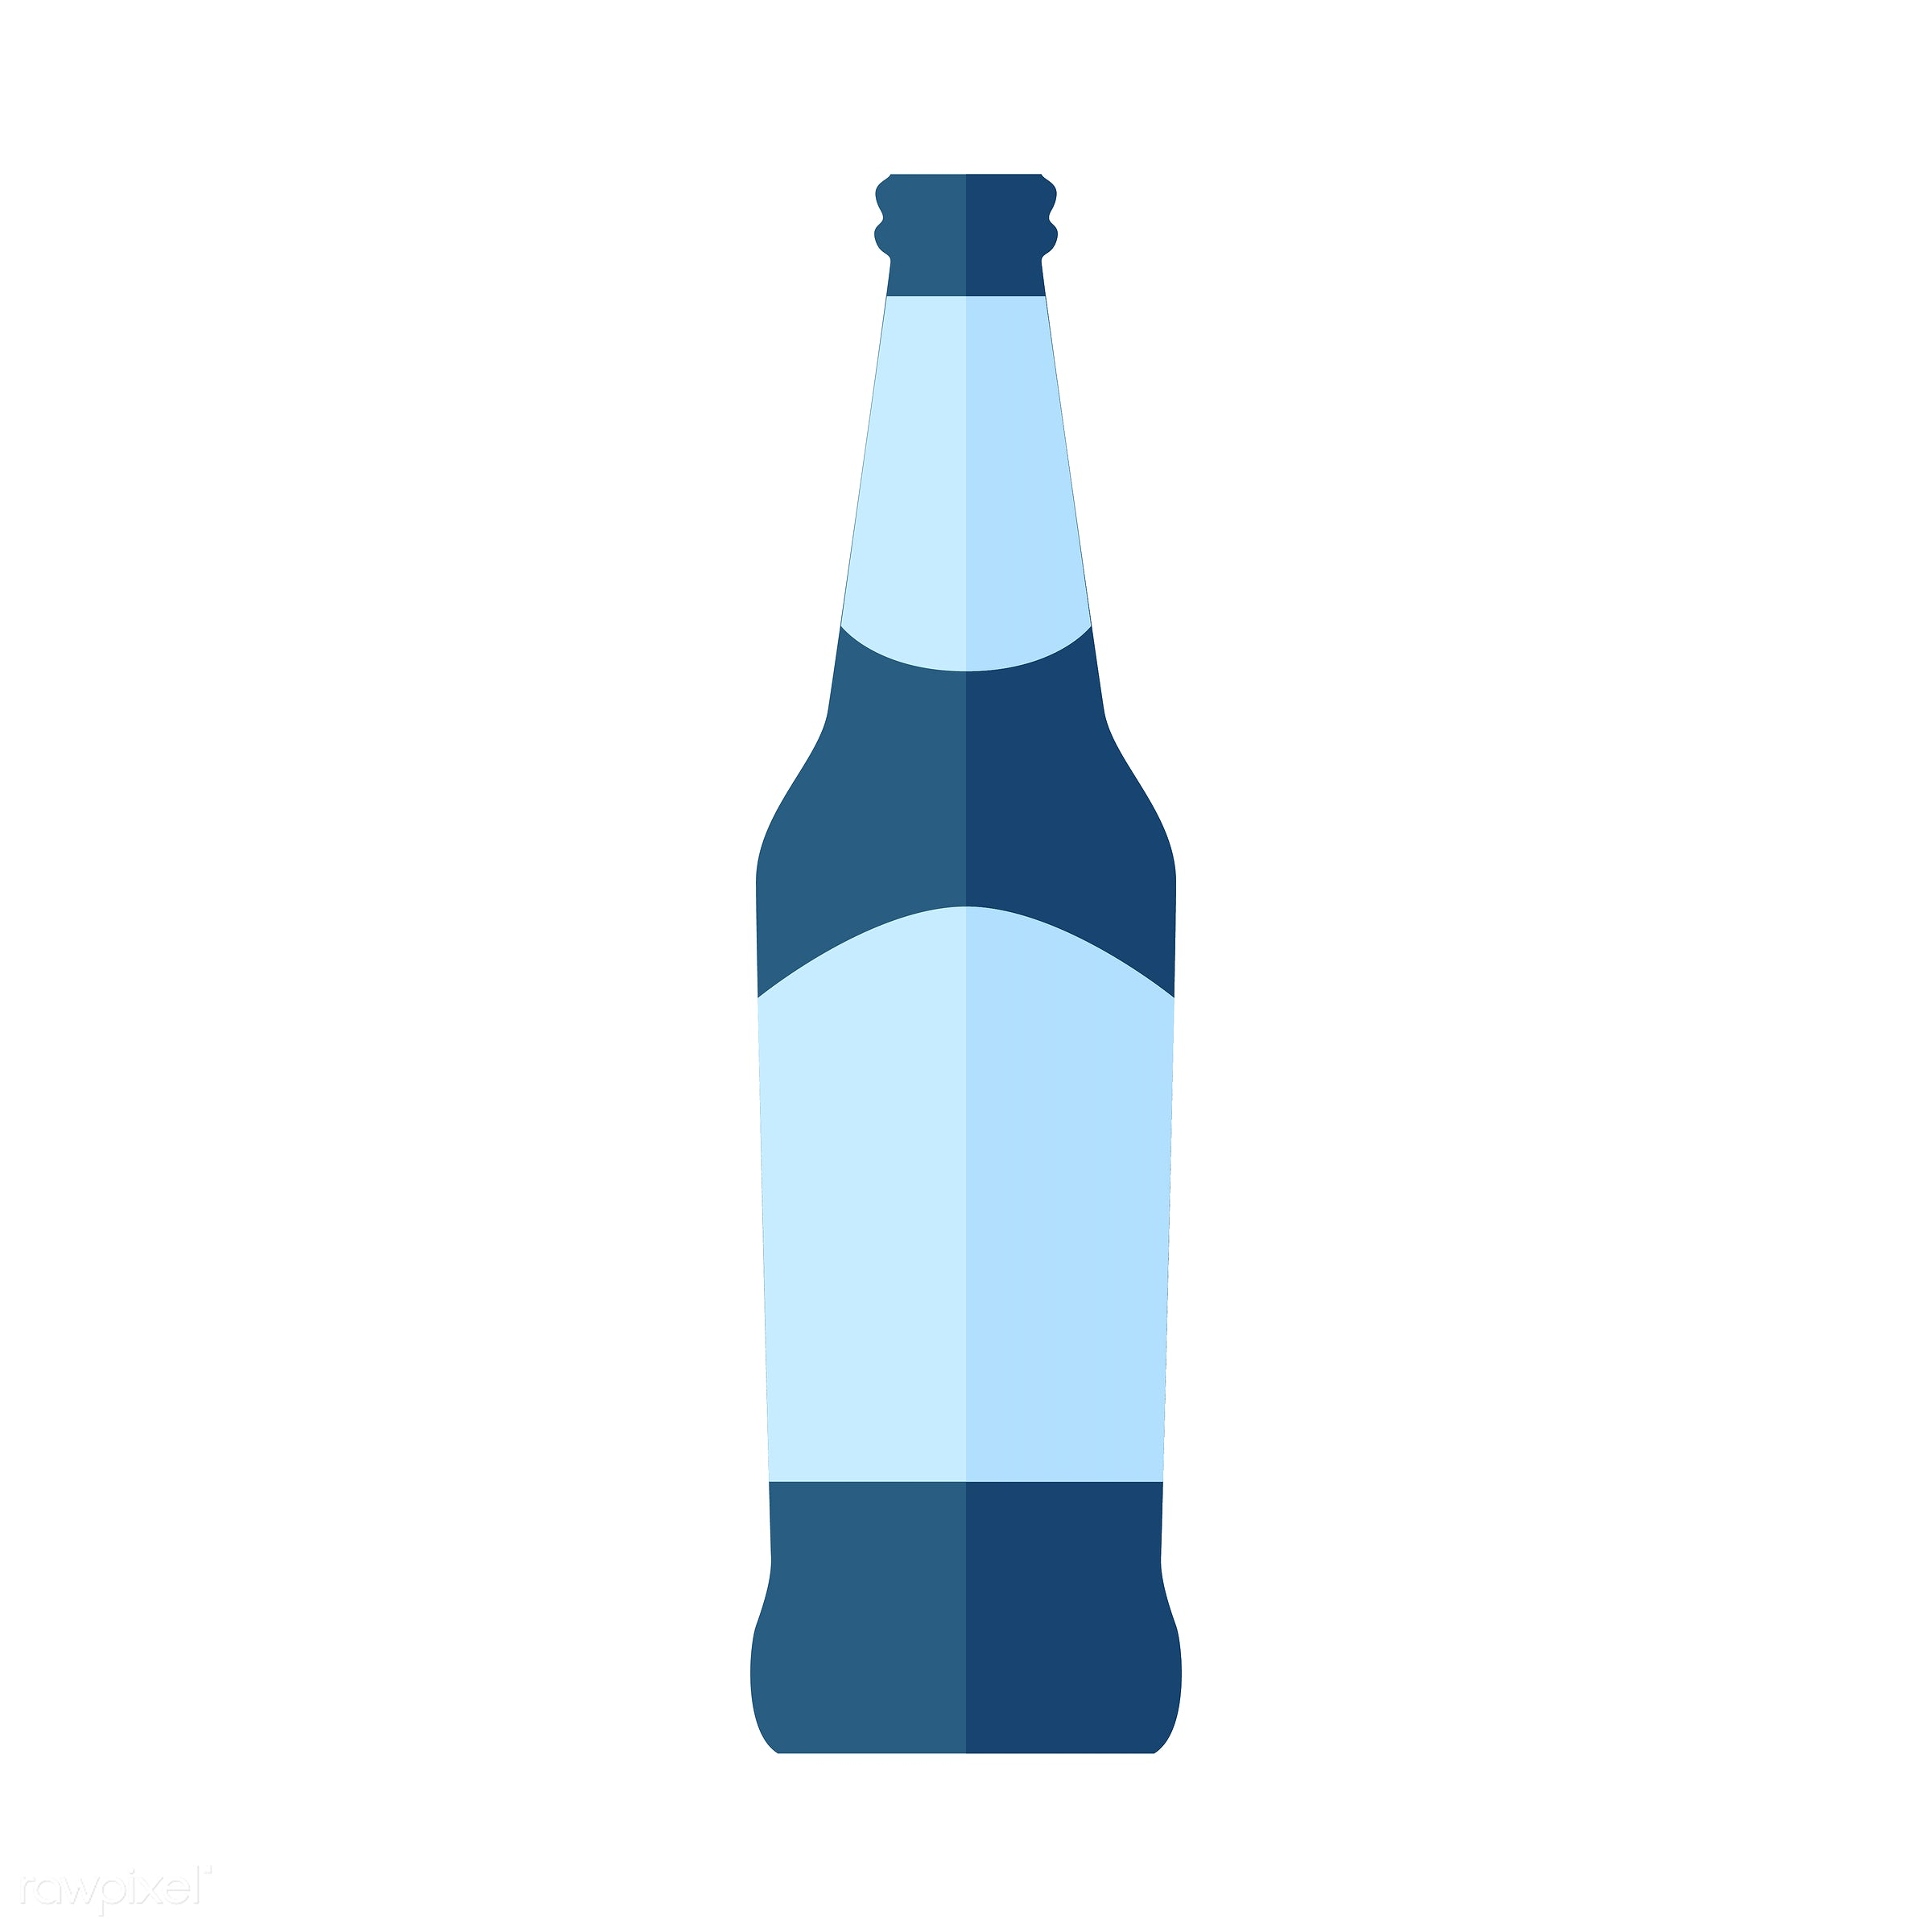 vector, graphic, illustration, icon, symbol, colorful, cute, drink, beverage, water, blue, beer, beer bottle, glass bottle